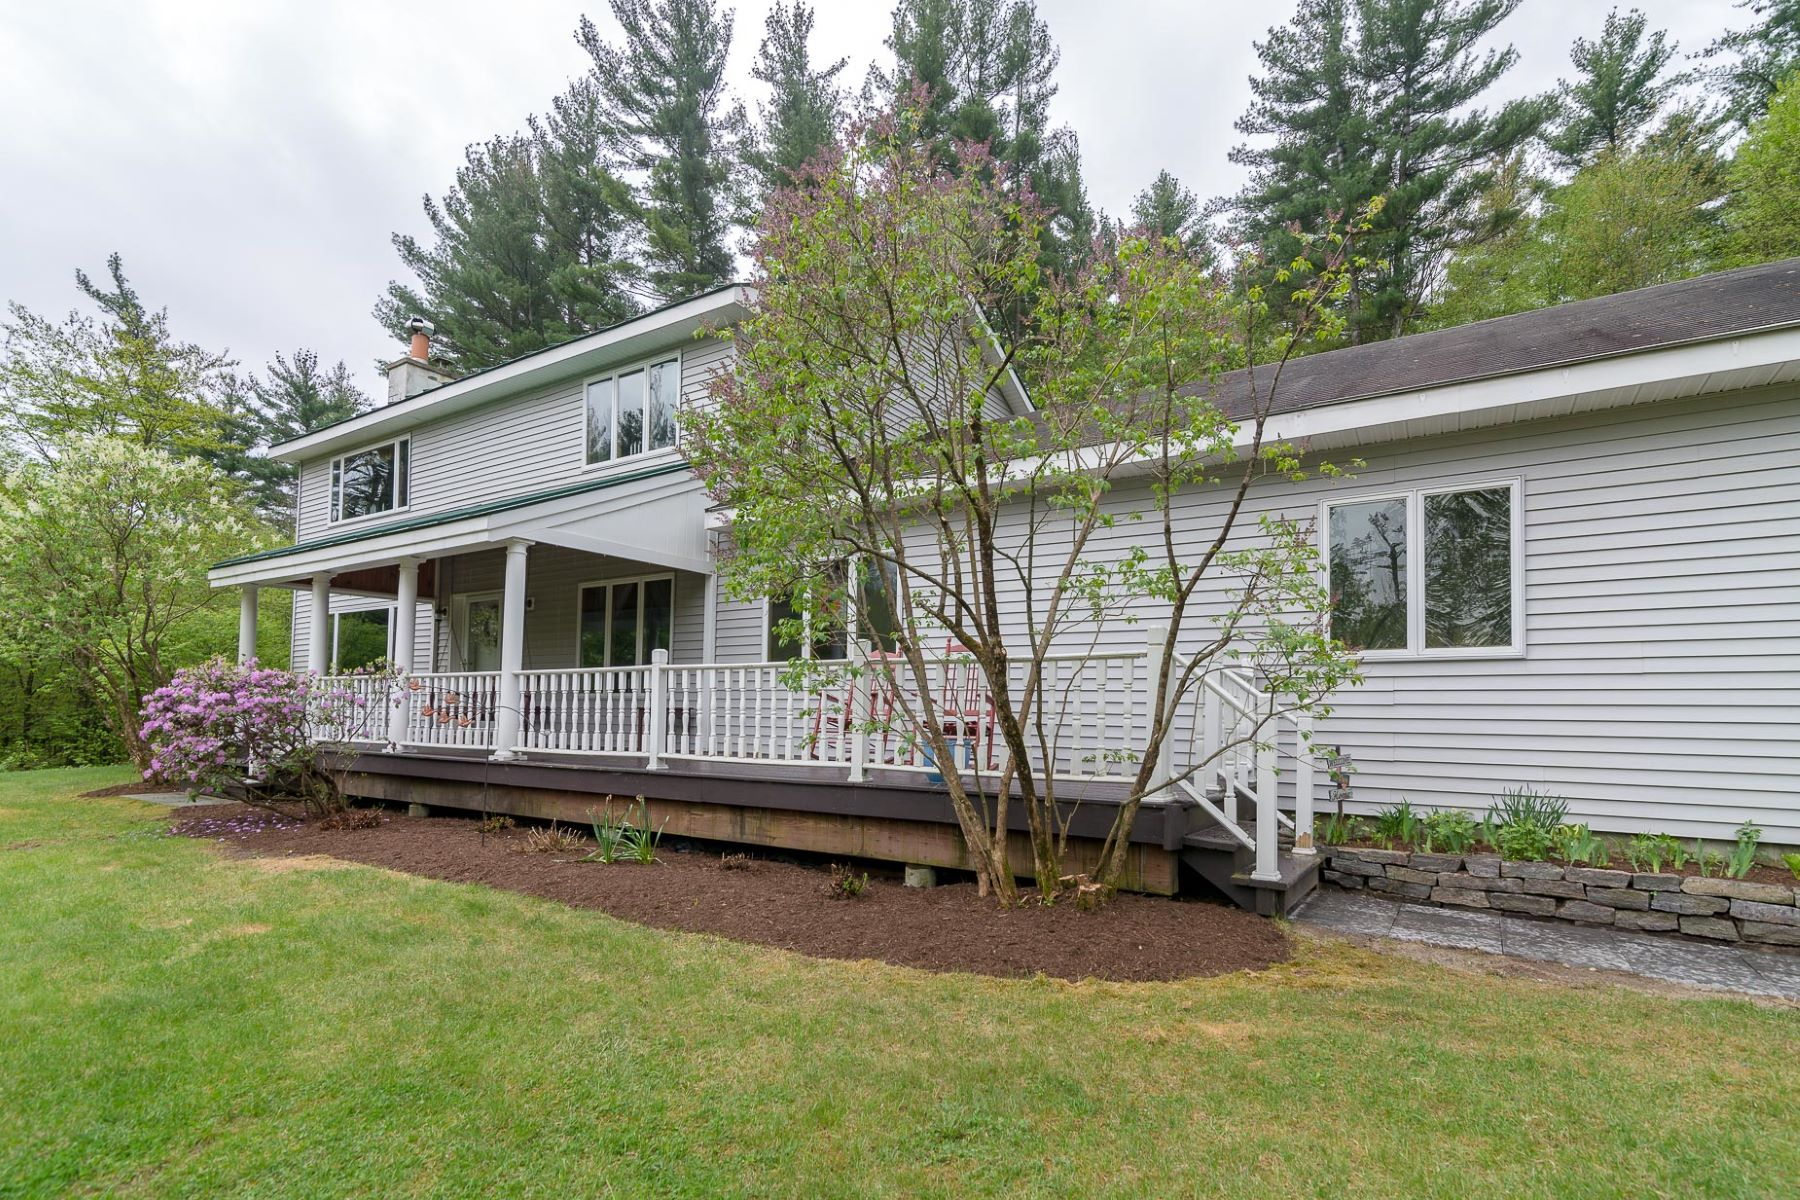 Single Family Homes for Sale at Spacious Colonial with Many Updates 493 Crow Hill Rd Arlington, Vermont 05250 United States